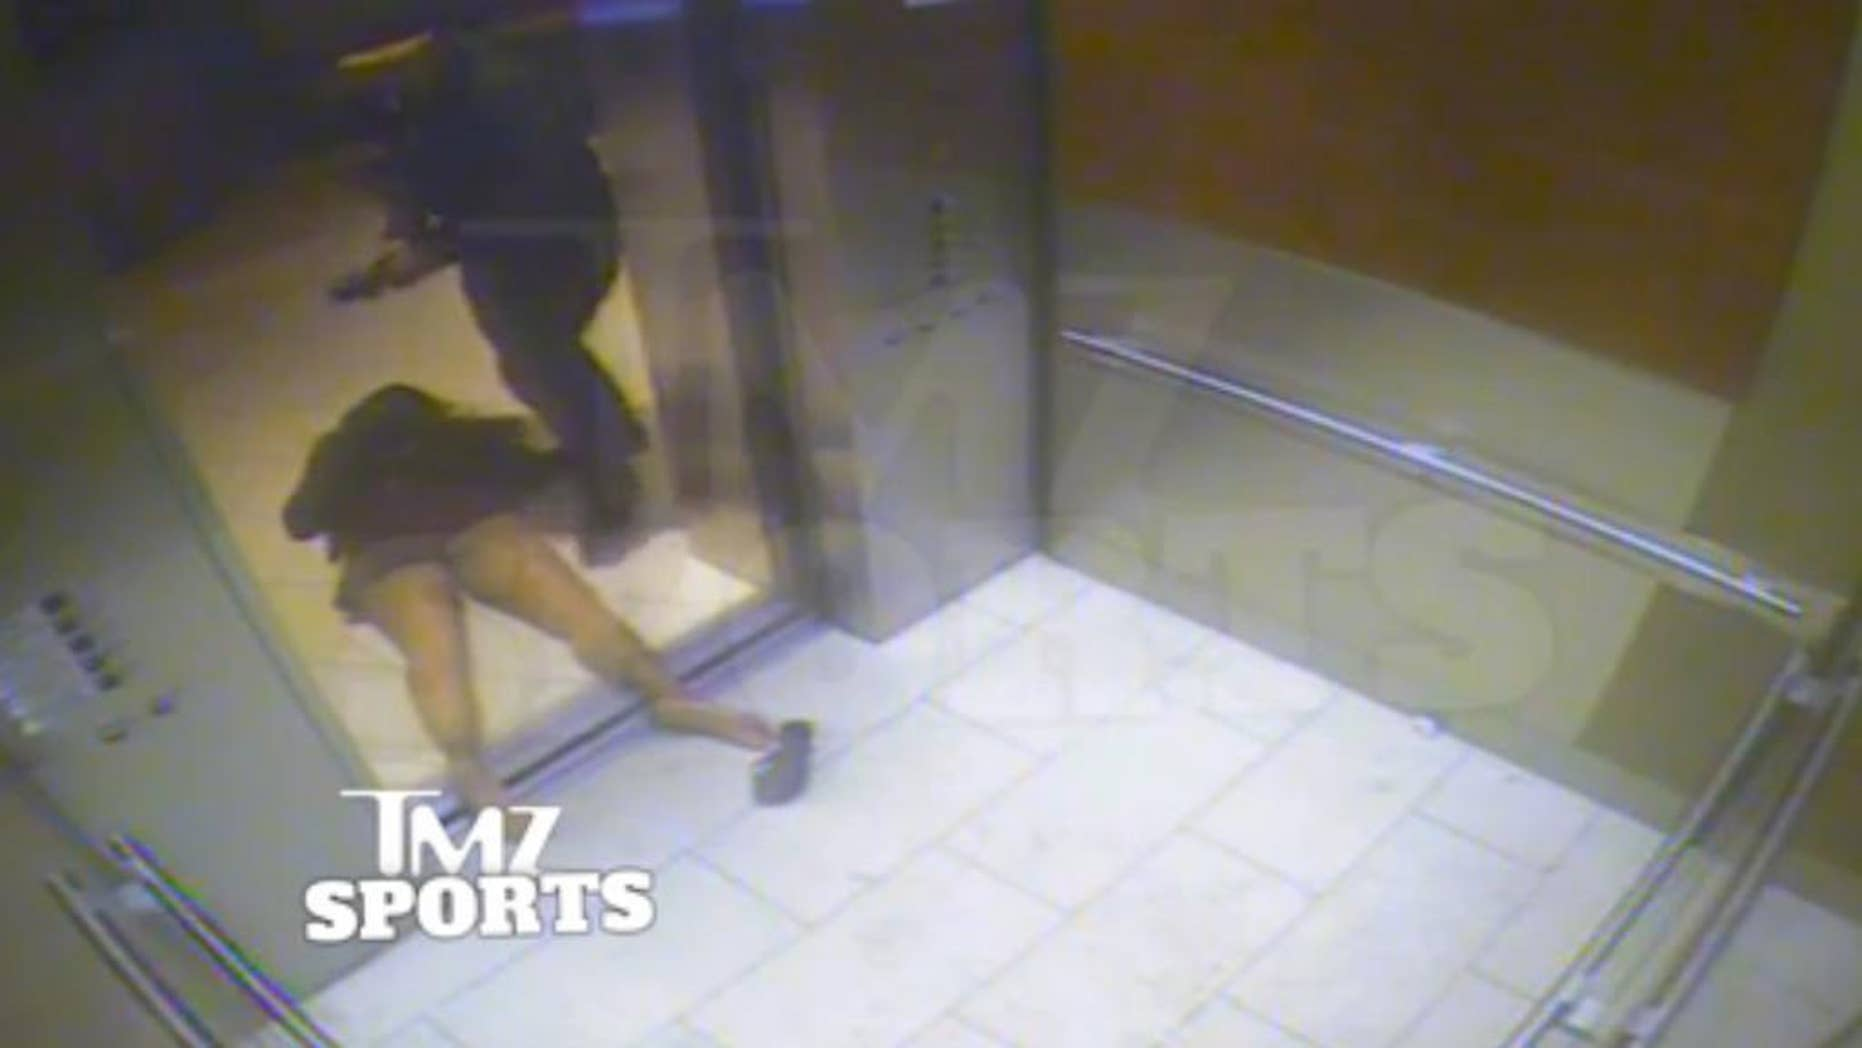 """FILE - In this February 2014 file photo, from a still image taken from a hotel security video released by TMZ Sports, Baltimore Ravens running back Ray Rice drags his fiancee, Janay Palmer, out of an elevator moments after knocking her off her feet, against the elevator's railing at the Revel casino in Atlantic City, N.J. A law enforcement official says he sent a video of Ray Rice punching his then-fiancee to an NFL executive five months ago, while league officers have insisted they didn't see the violent images until this week. The person played The Associated Press a 12-second voicemail from an NFL office number on April 9 confirming the video arrived. A female voice expresses thanks and says: """"You're right. It's terrible."""" (AP Photo/File)"""